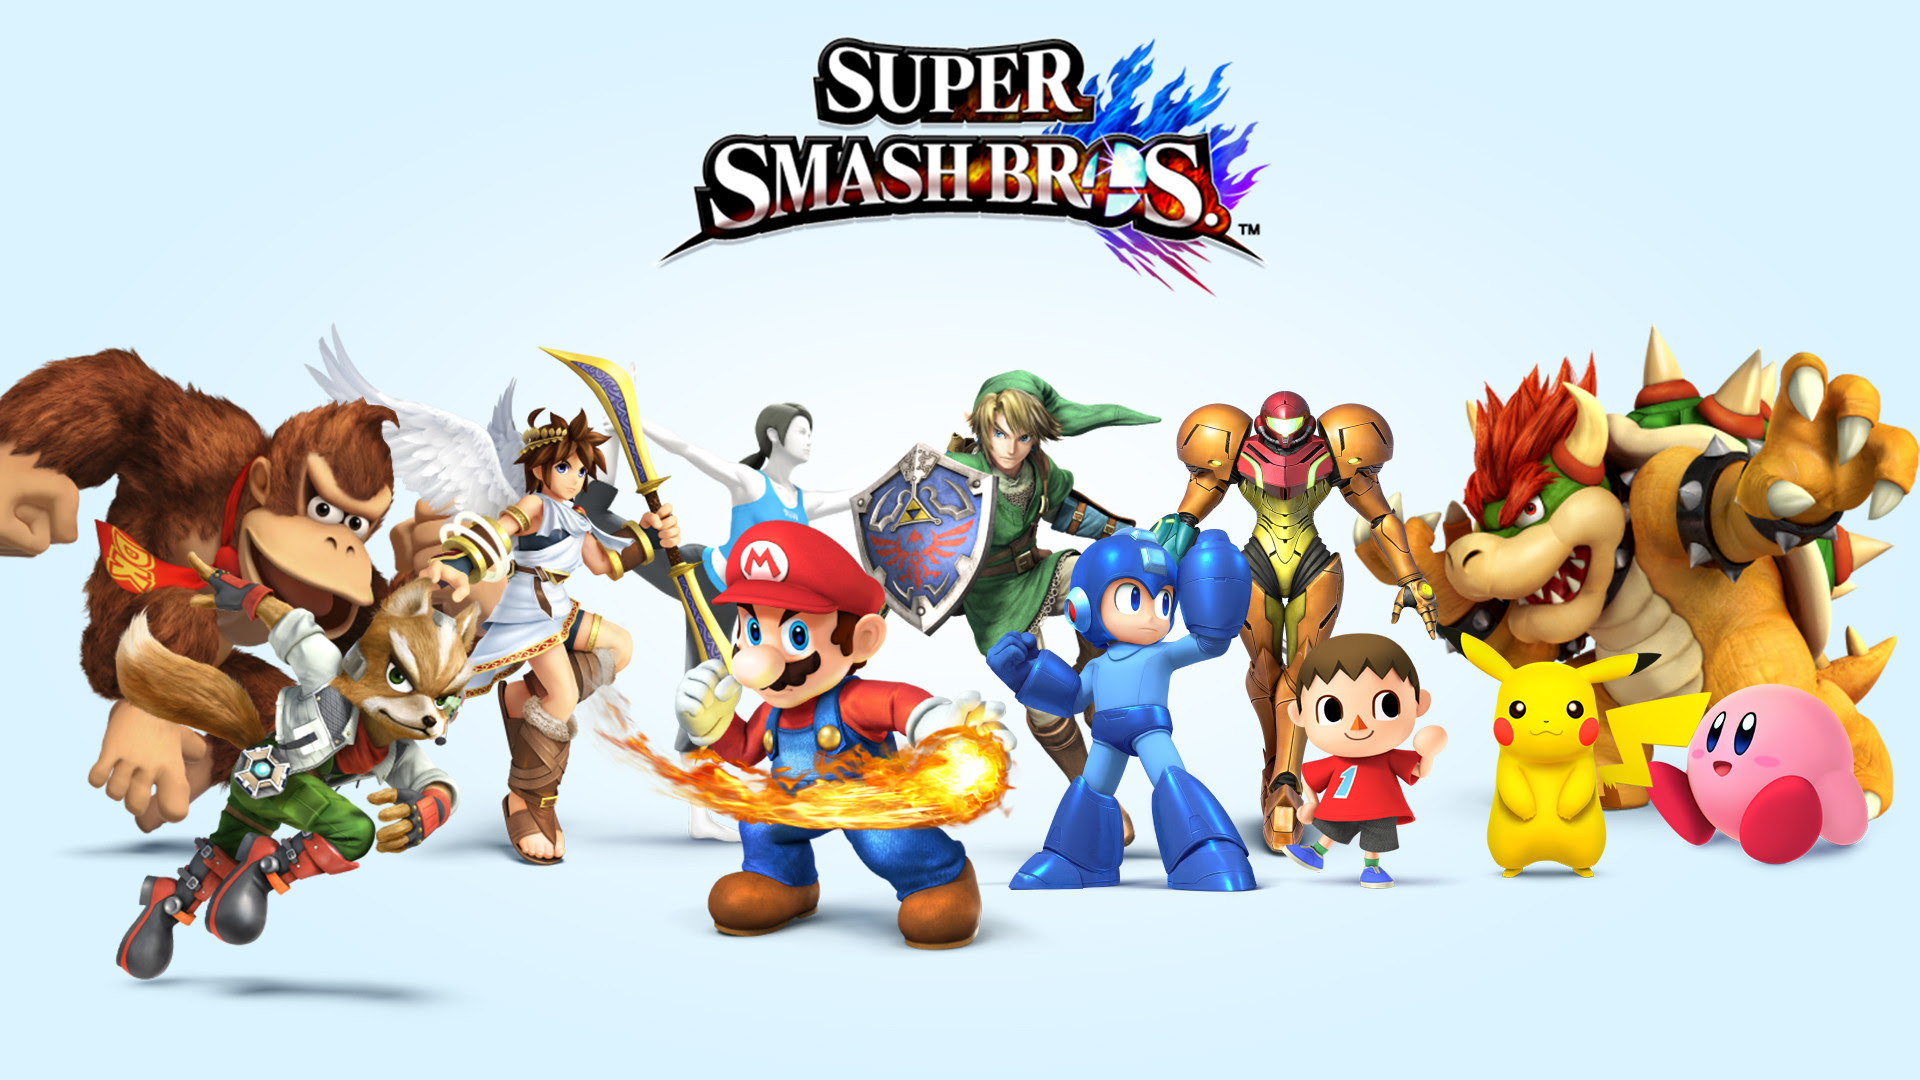 Super Smash Brothers Wallpaper 75 Images